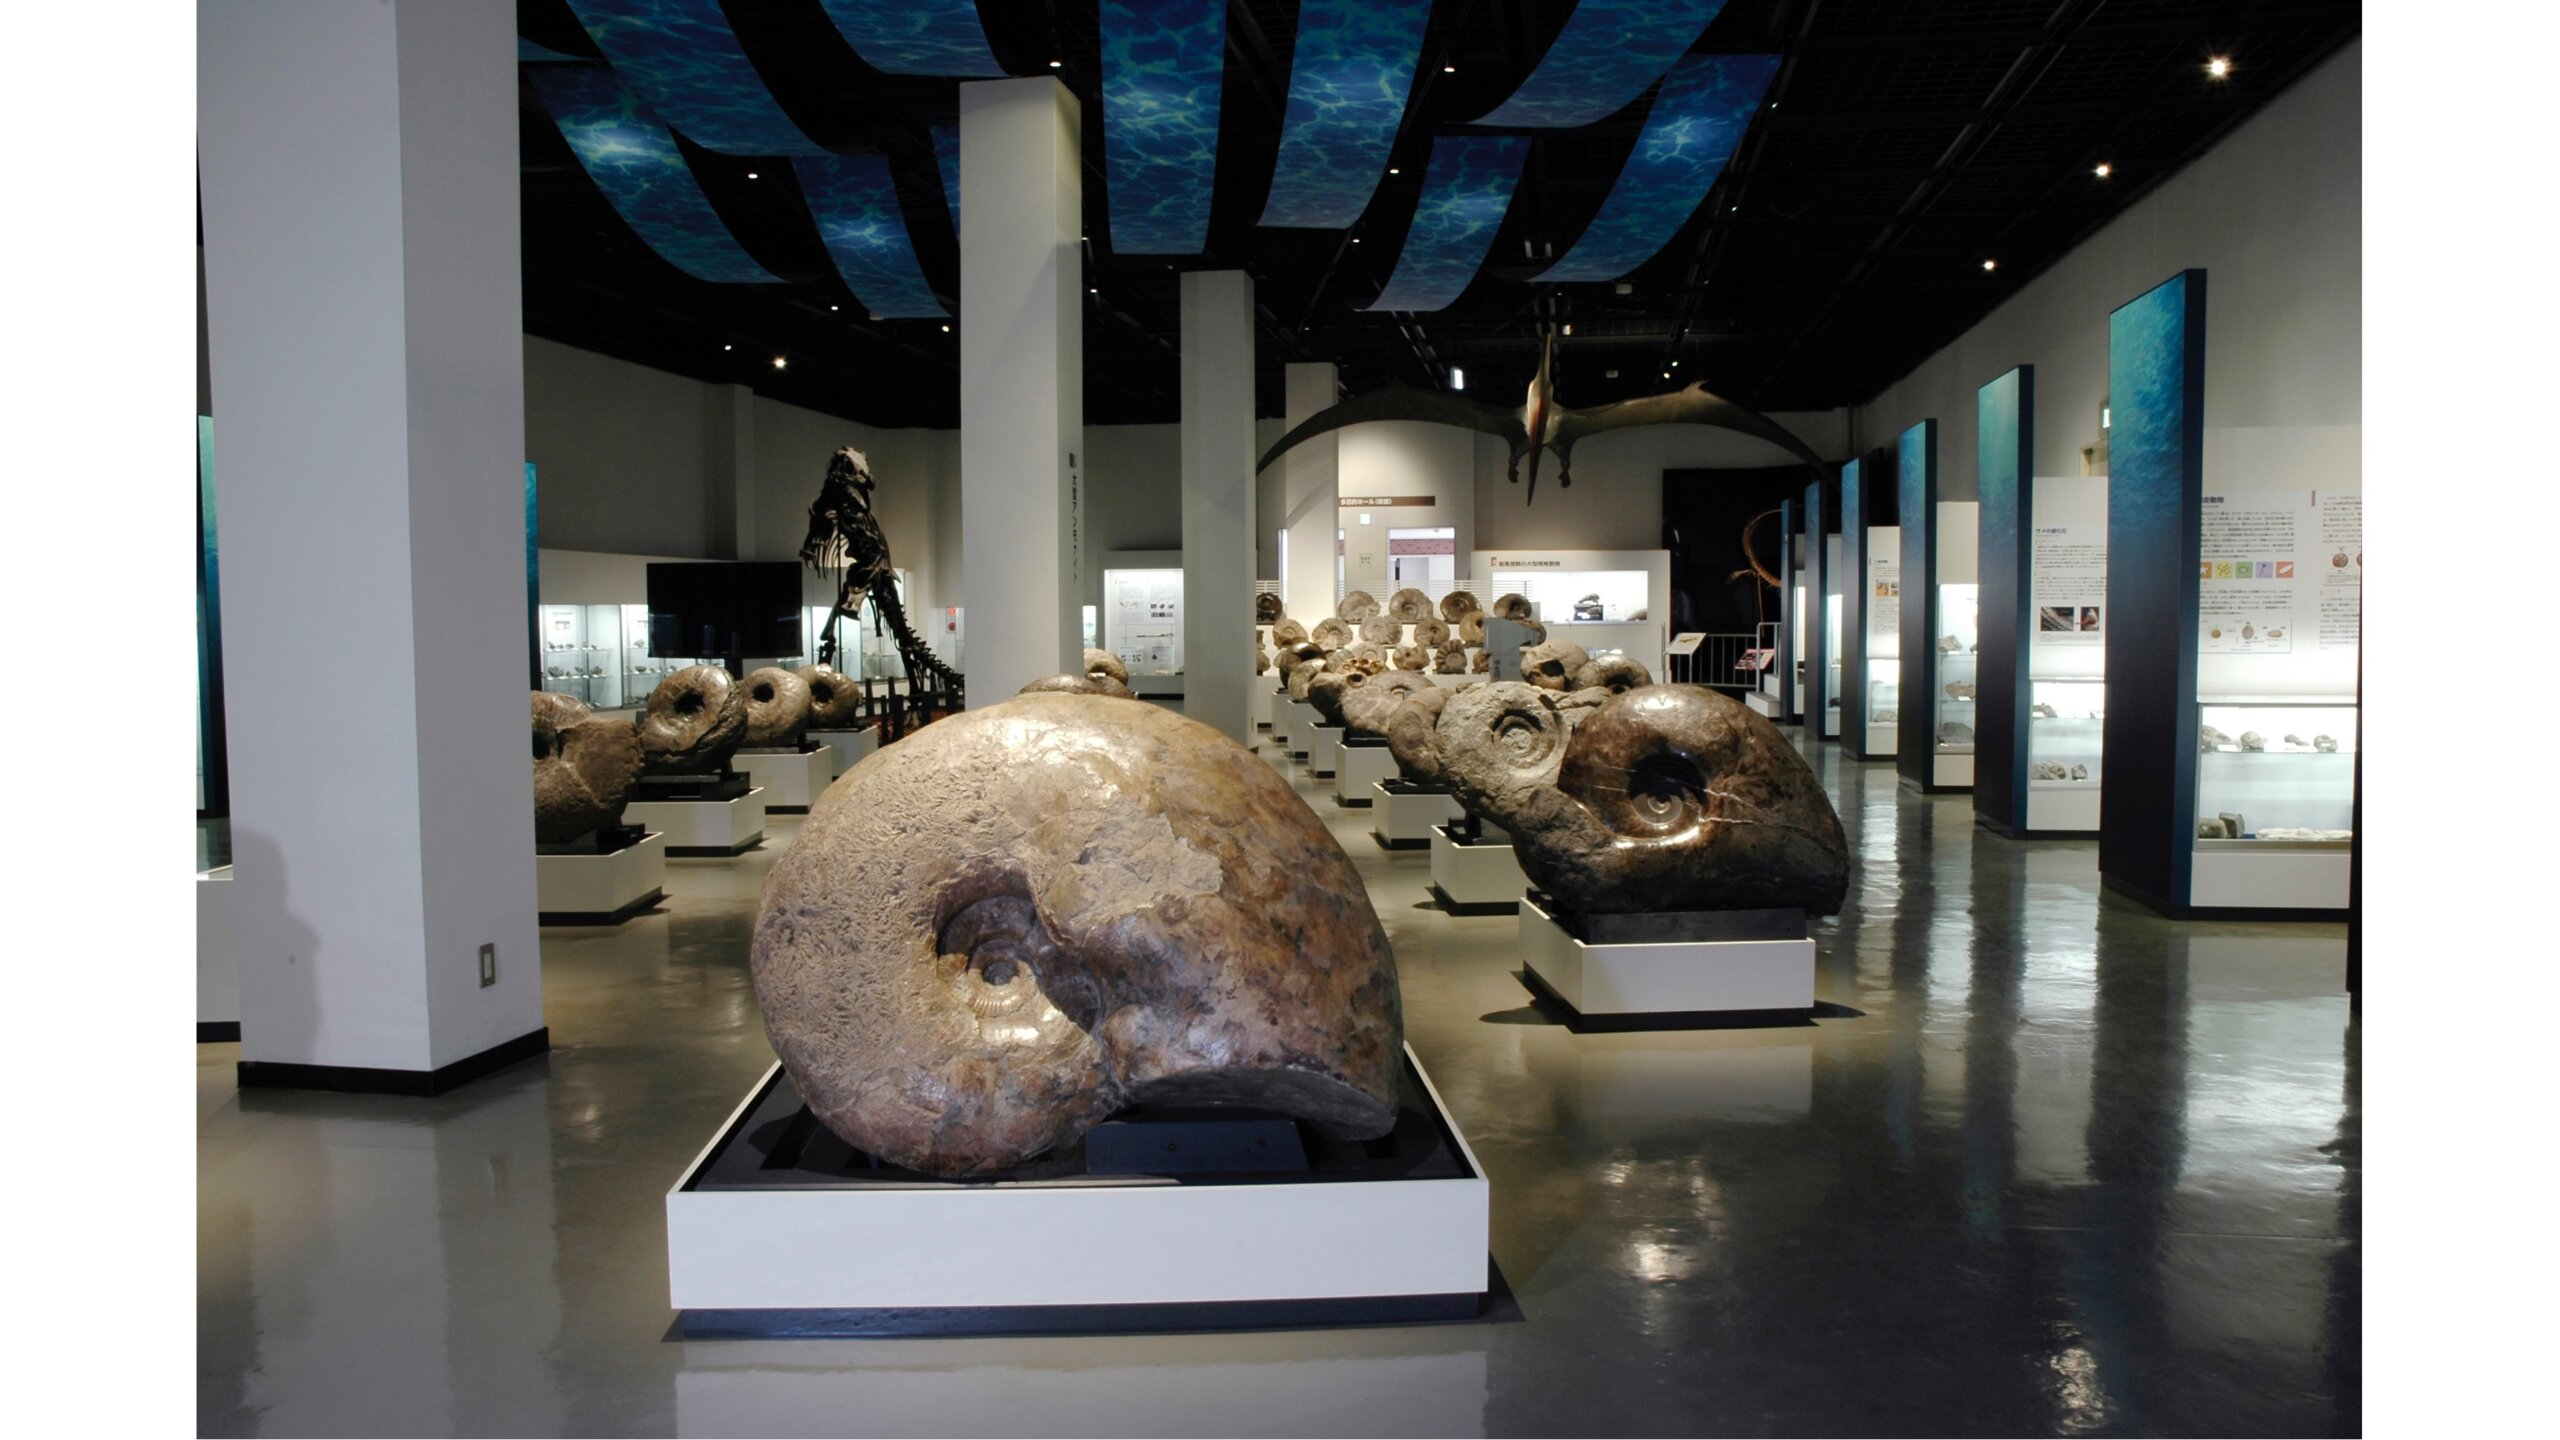 Mikasa City Museum, which features more than 1000 fossils including ammonites found in the area. Being able to get up-close to large ammonites and the fossil of the Taniwhasaurus Mikasaensis (a large reptile found in the ocean) makes the experience worthwhile.  photo: Mikasa City Museum